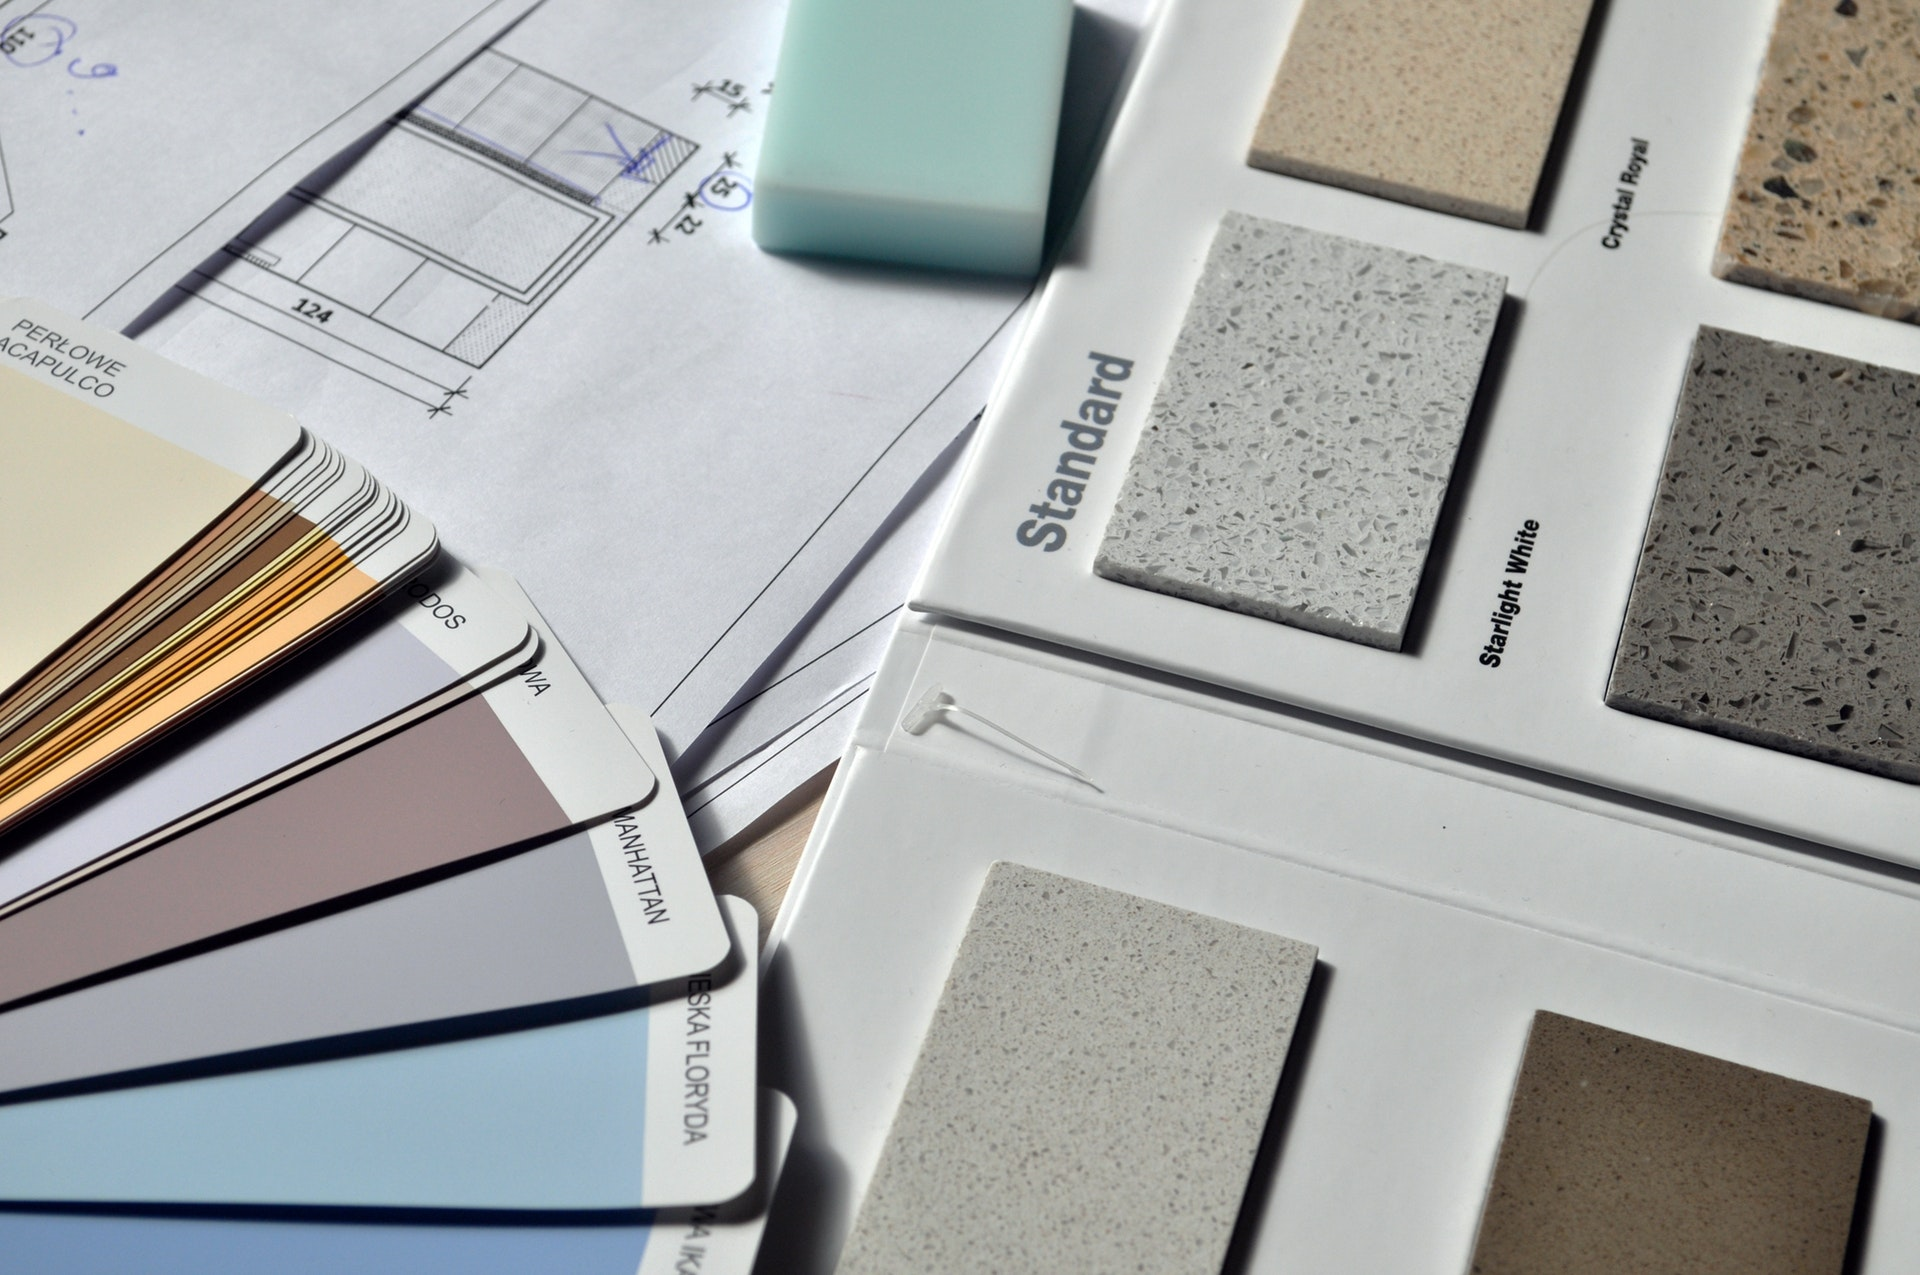 """HOW TO COLOUR YOUR HOME IN 2019 - Pantone revealed that """"living coral"""" is the colour of the year for 2019, but what other colours are trending as we look towards Spring and Summer?"""